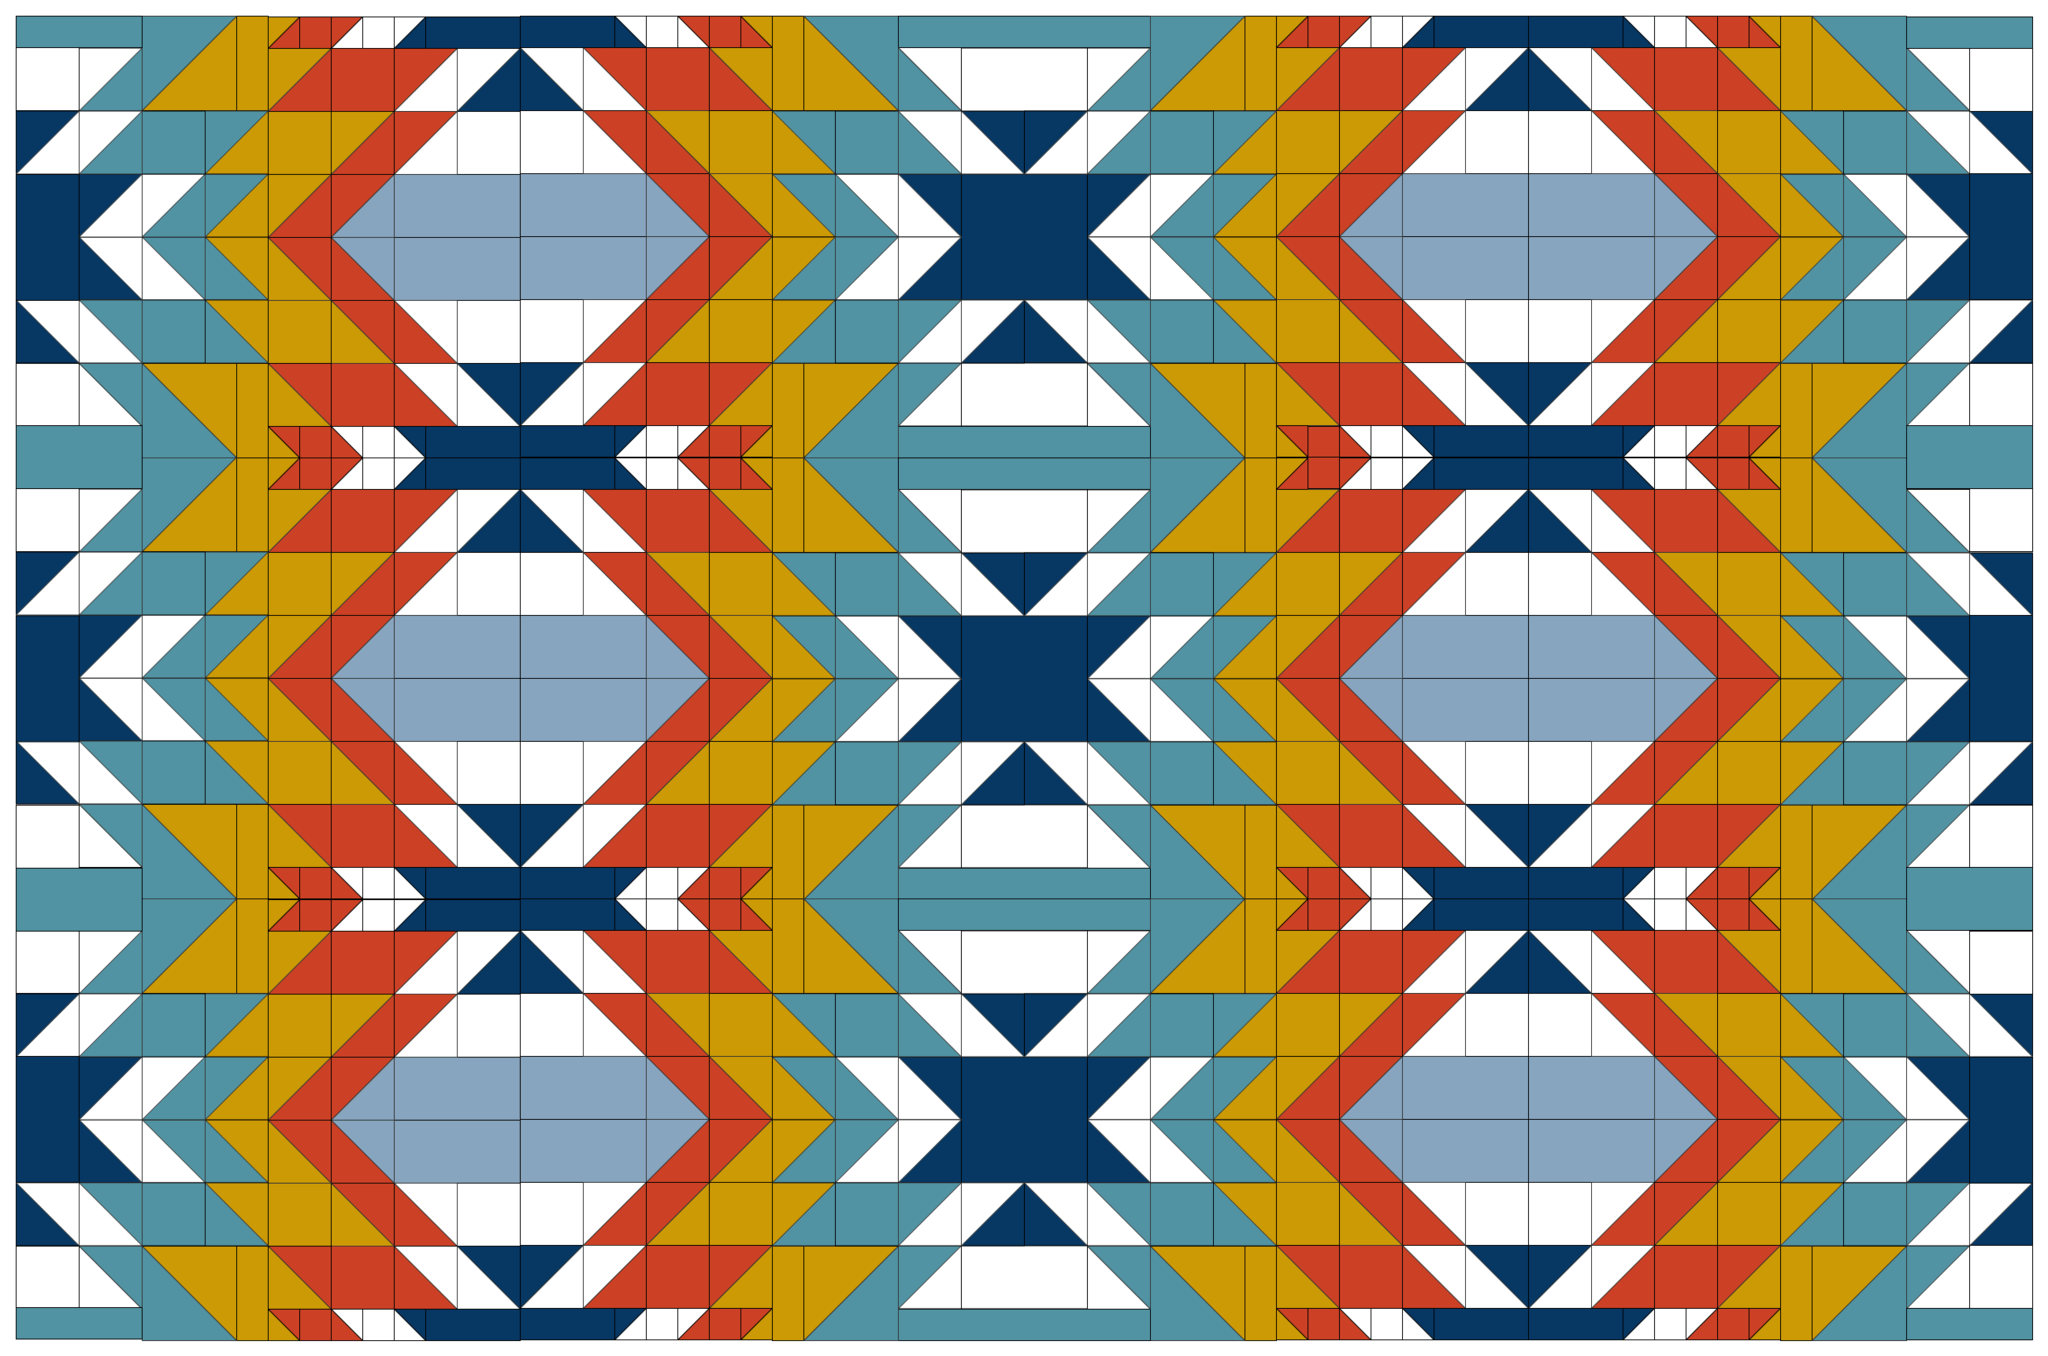 Modified version of Bonjour Quilts' Go West pattern.